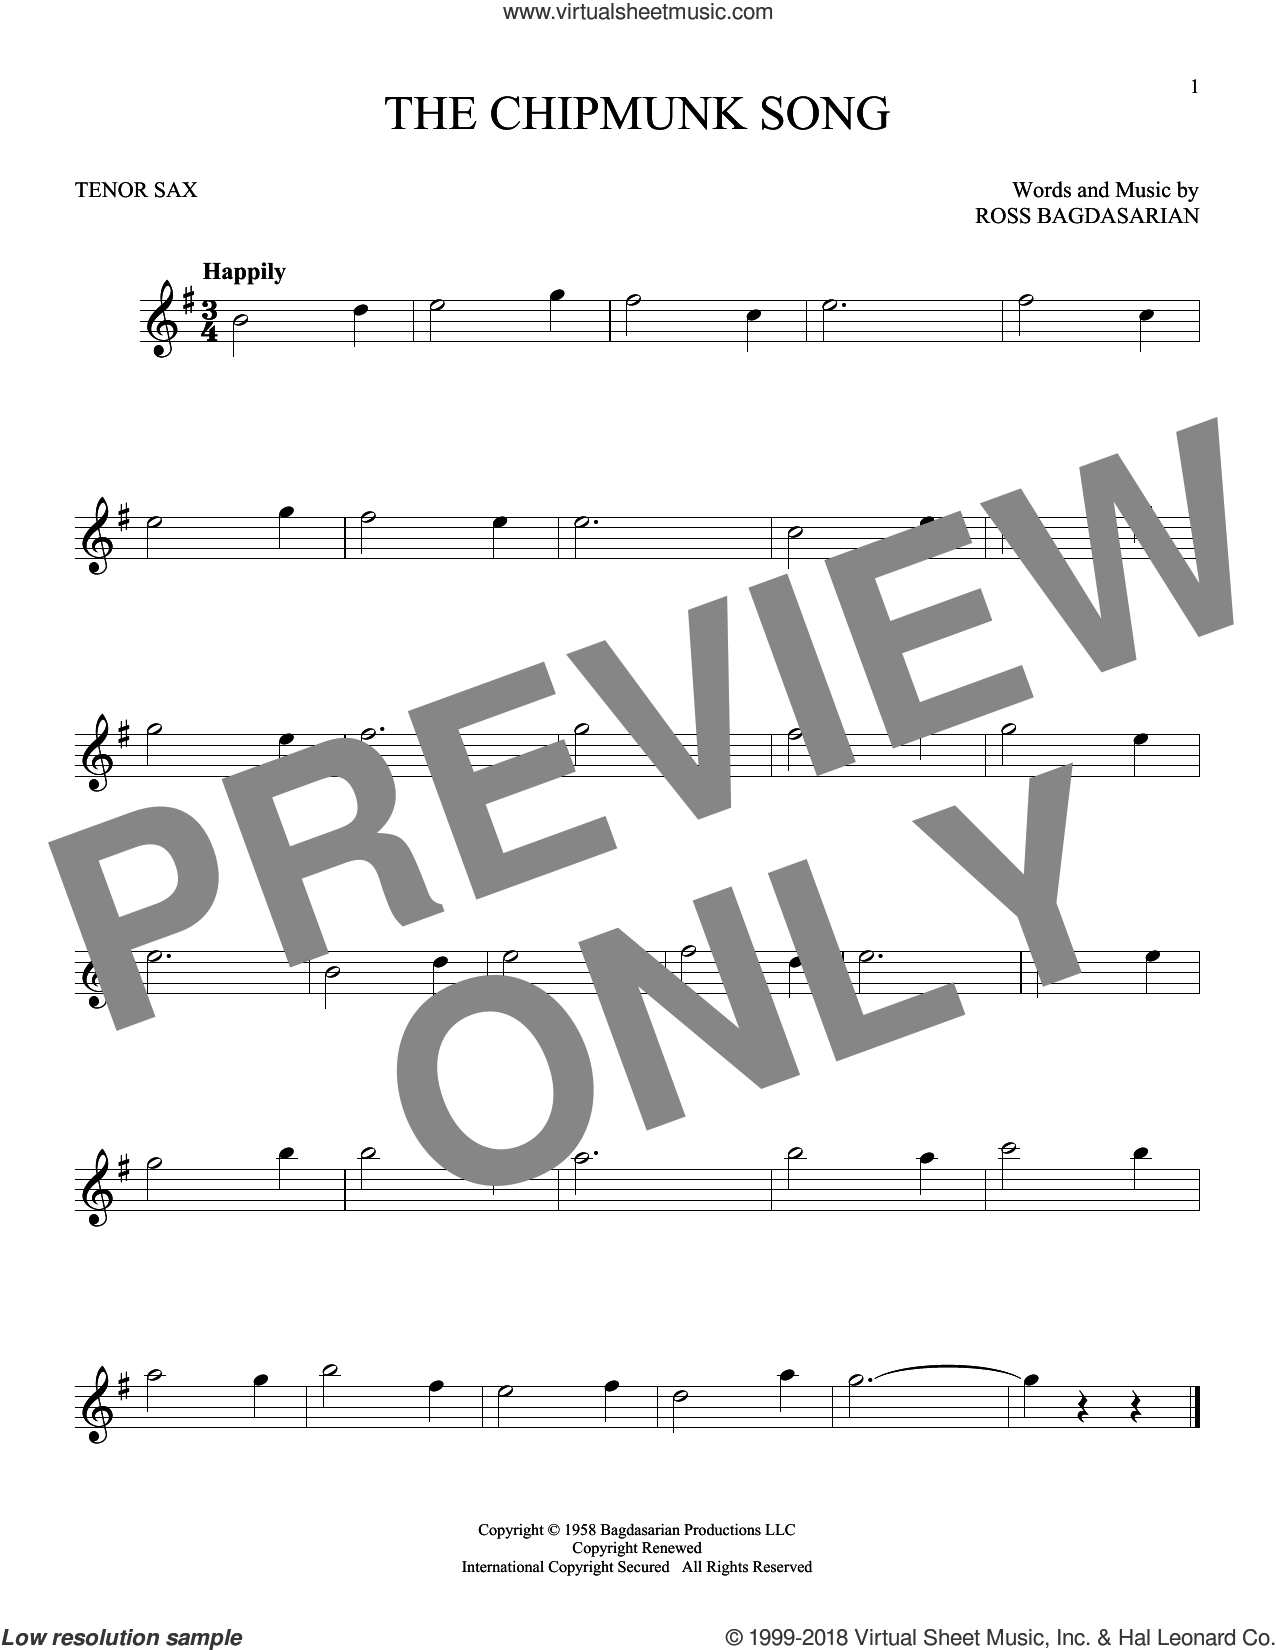 The Chipmunk Song sheet music for tenor saxophone solo by Ross Bagdasarian, Alvin And The Chipmunks and The Chipmunks, intermediate skill level